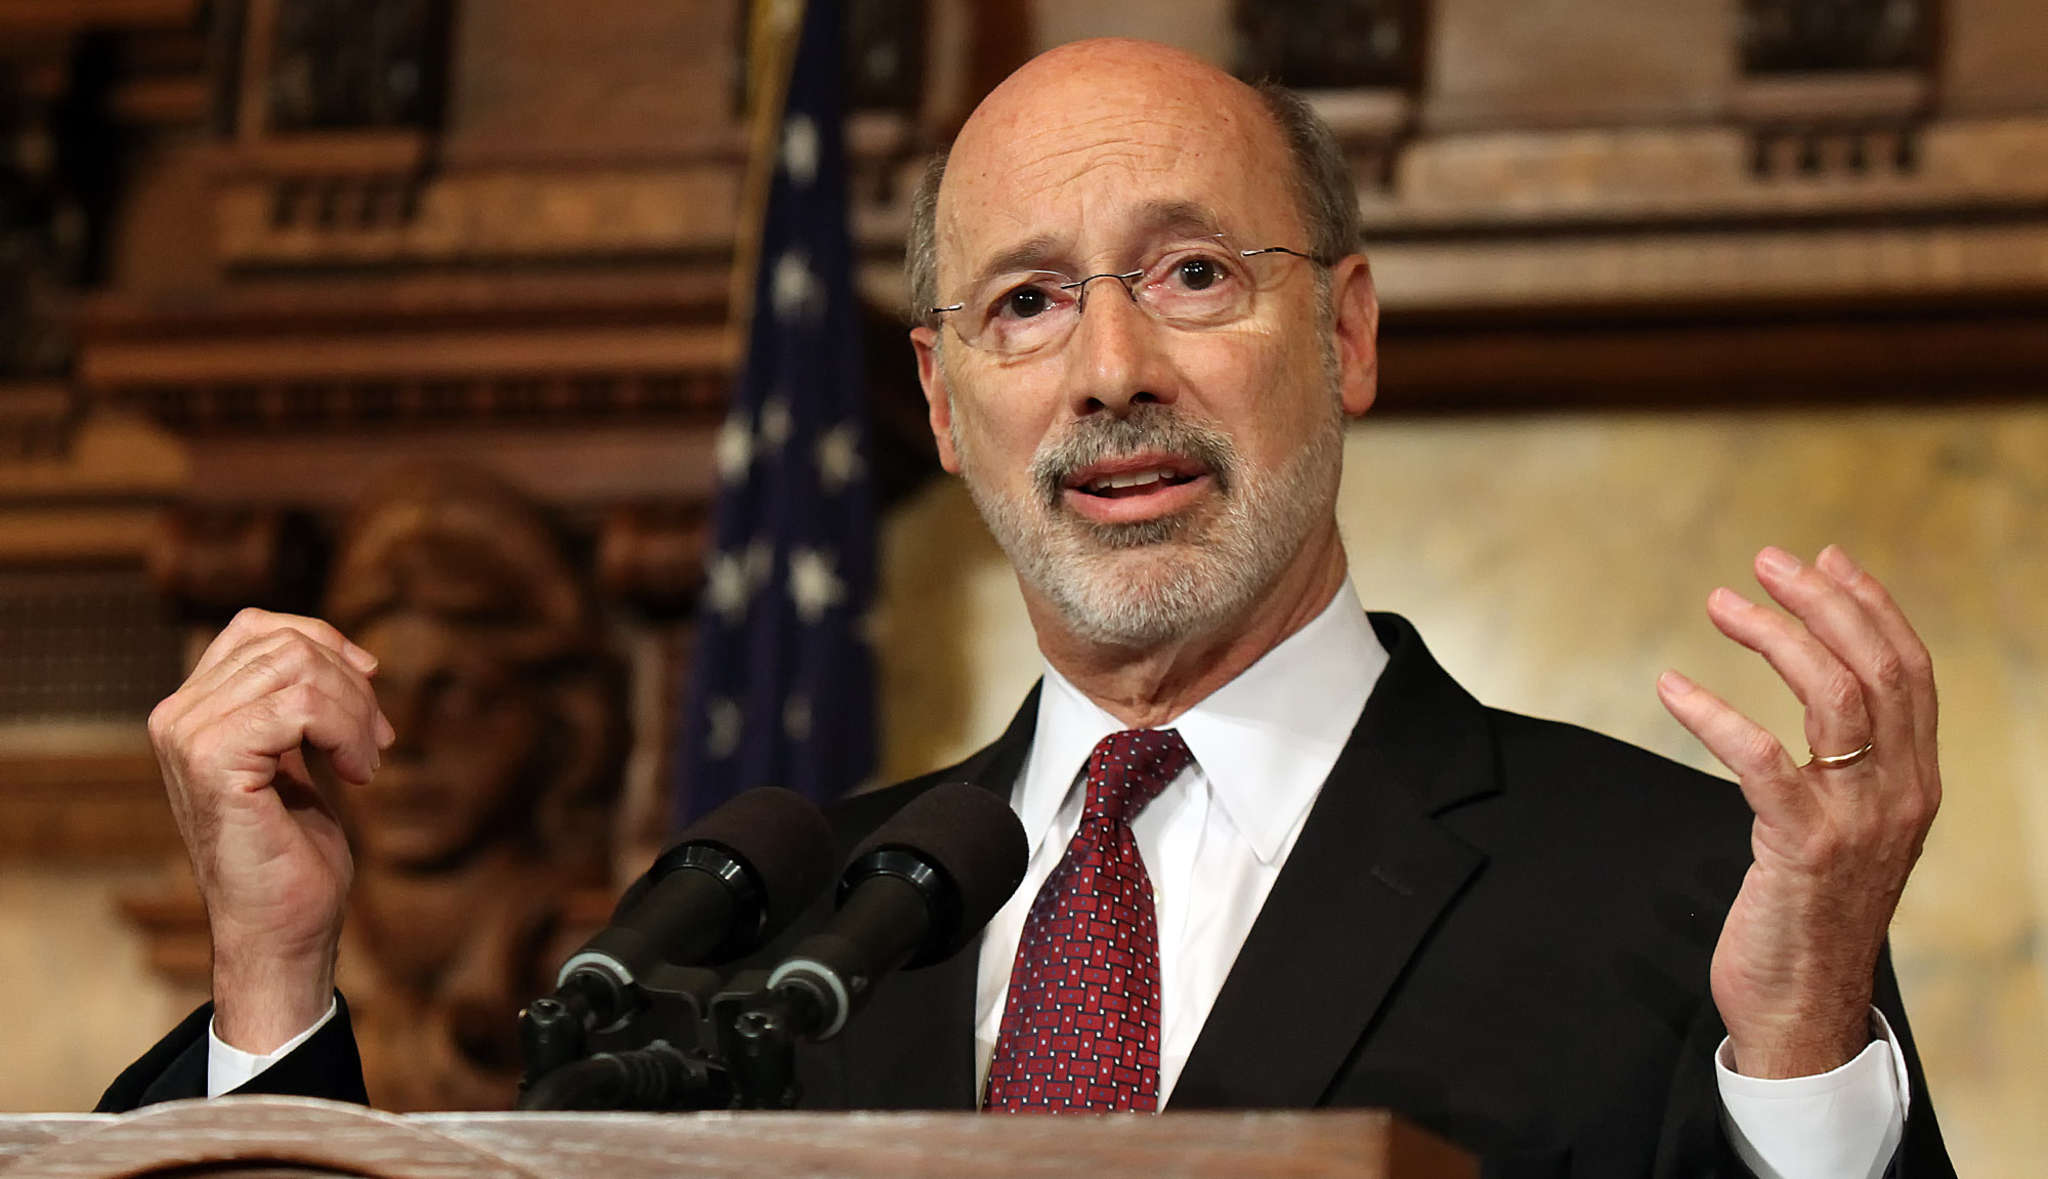 CHRIS KNIGHT / ASSOCIATED PRESS Unlike our state legislators , Gov. Wolf isn´t getting his salary, but that´s just because he donates it.